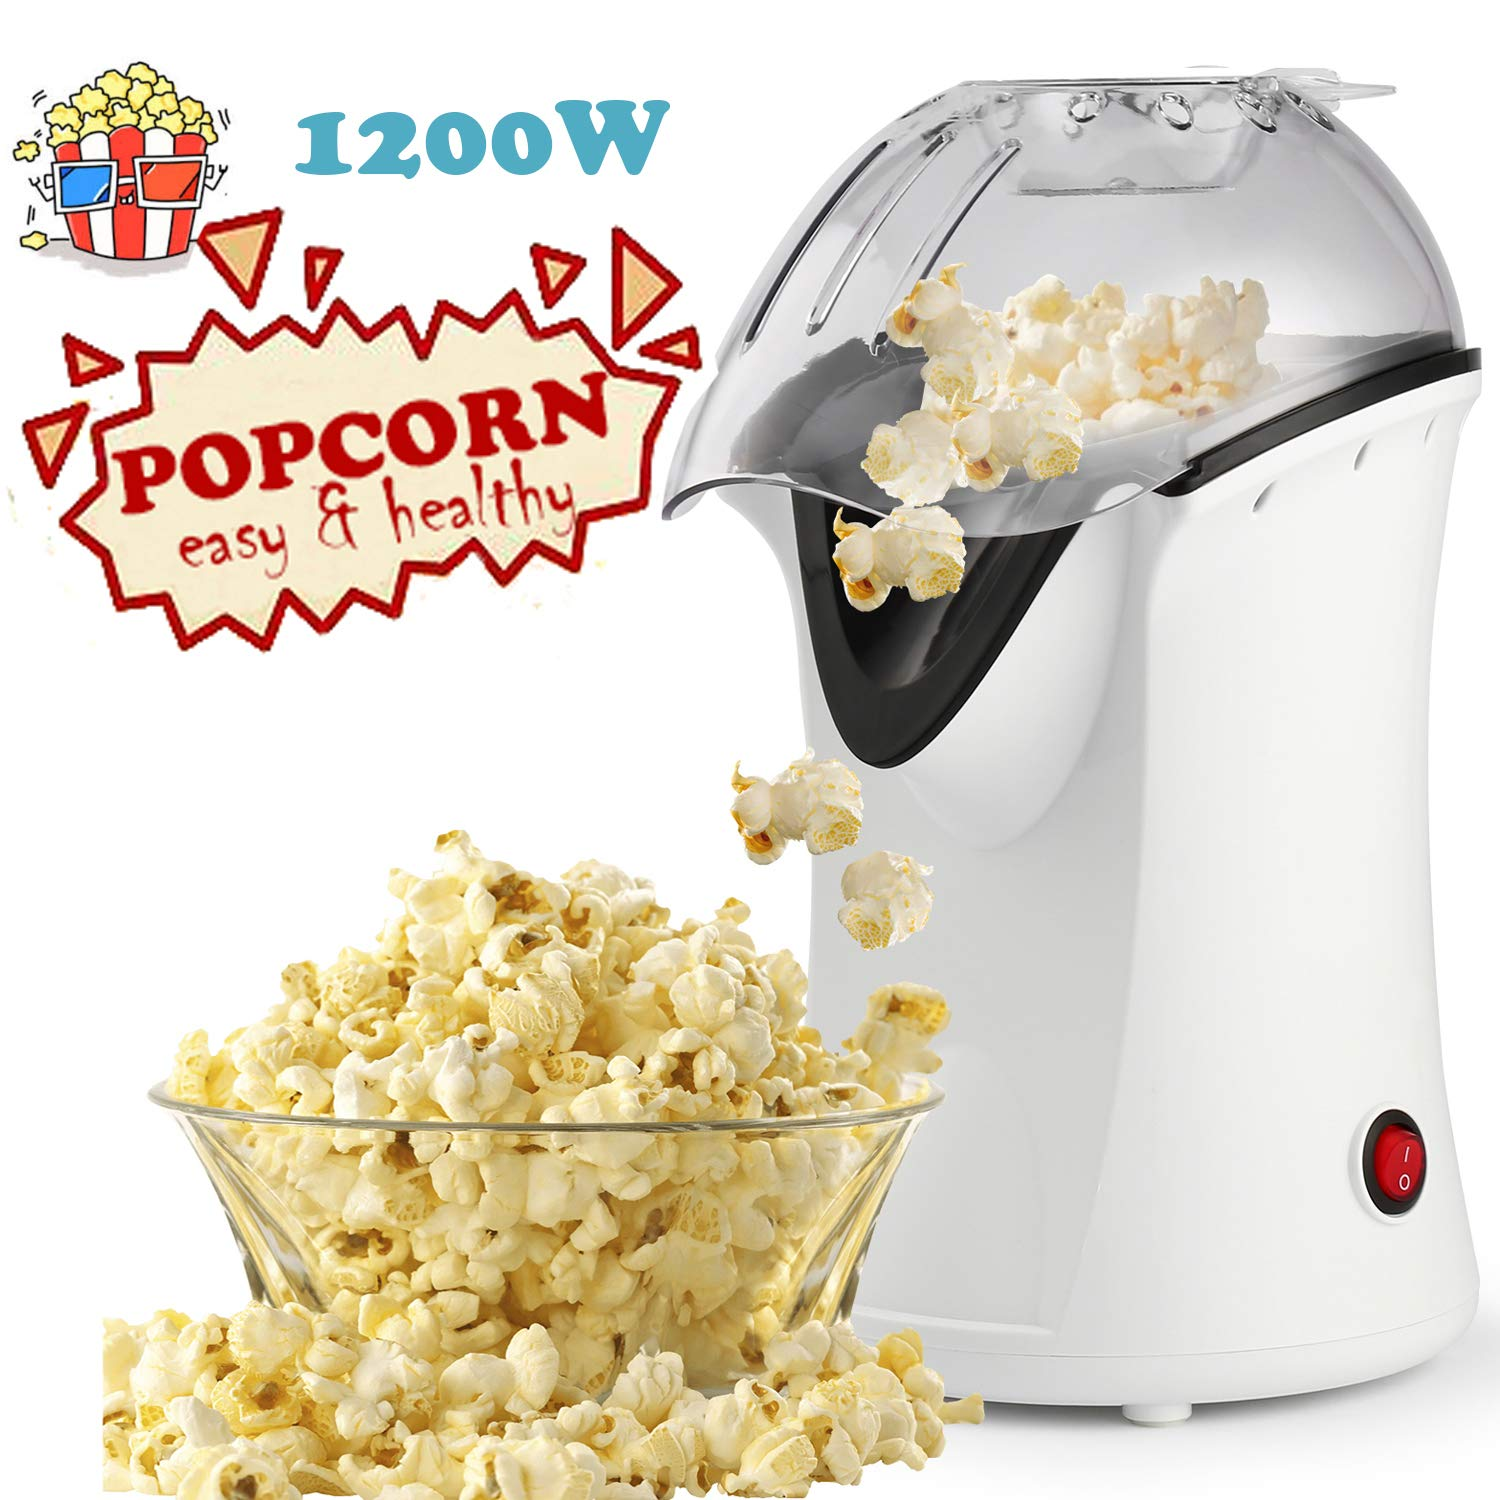 Popcorn Machine 1200W Hot Air Popcorn Popper Electric Maker for Home with On Off Switch, No Oil Needed White